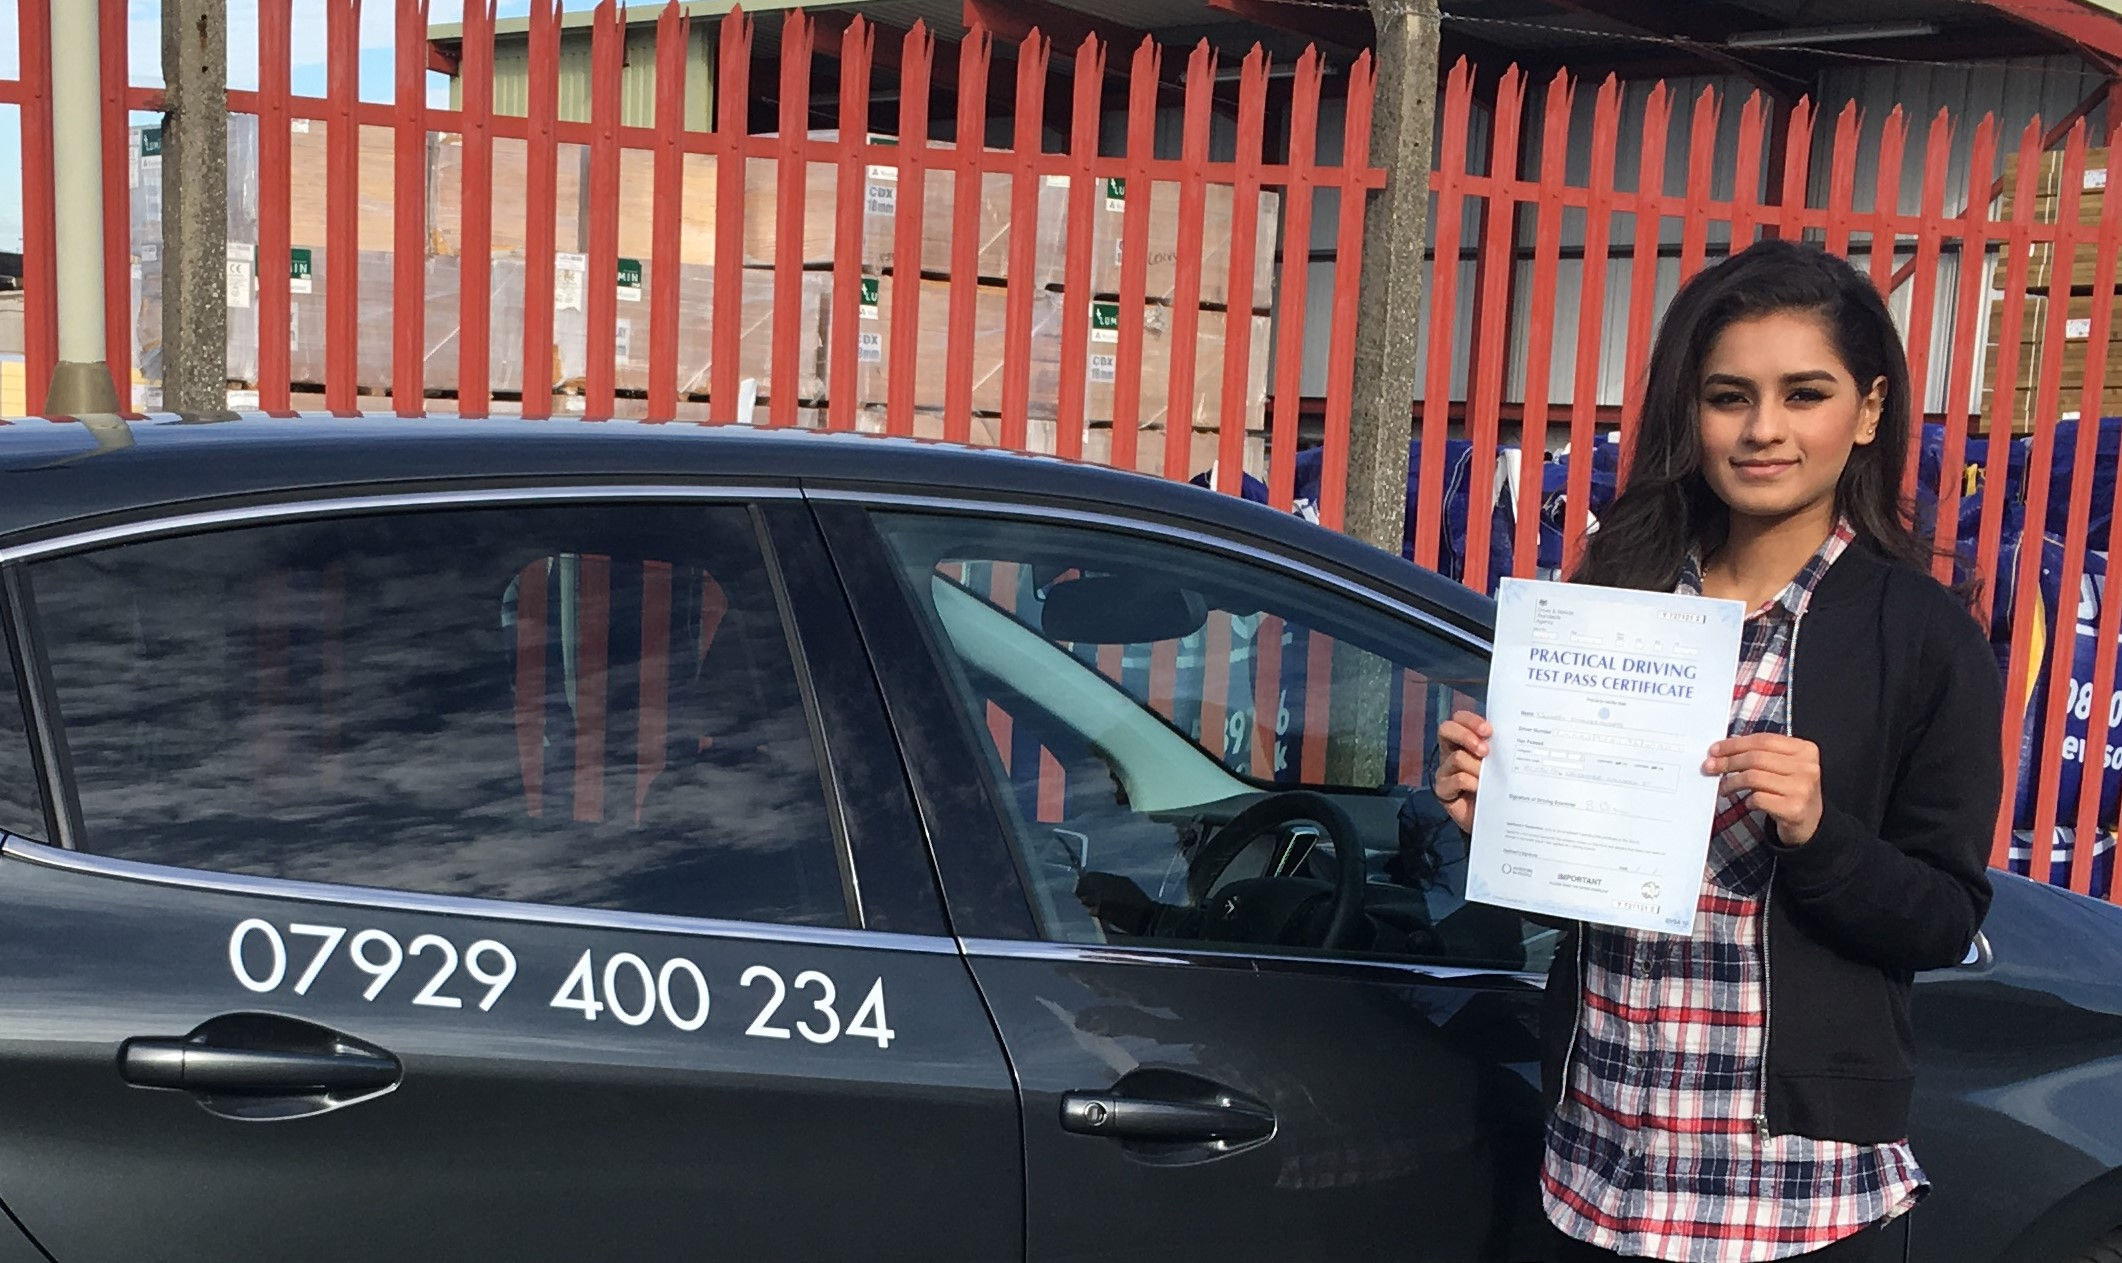 driving lessons leicester - Panchal Driving Academy - Unnati